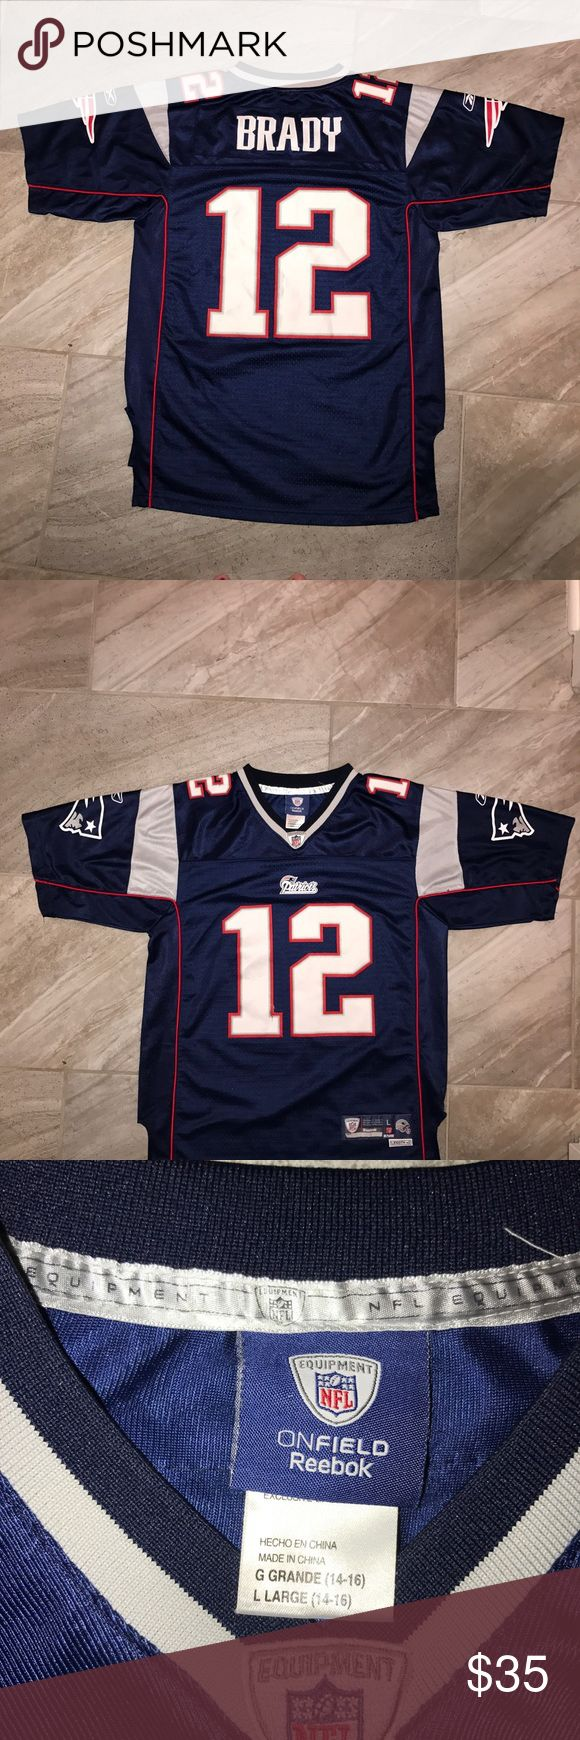 TOM BRADY JERSEY New England Patriots Jersey  fits a women's Small Actual sz is YOUTH Large. Good condition. Reebok Shirts & Tops Tees - Short Sleeve